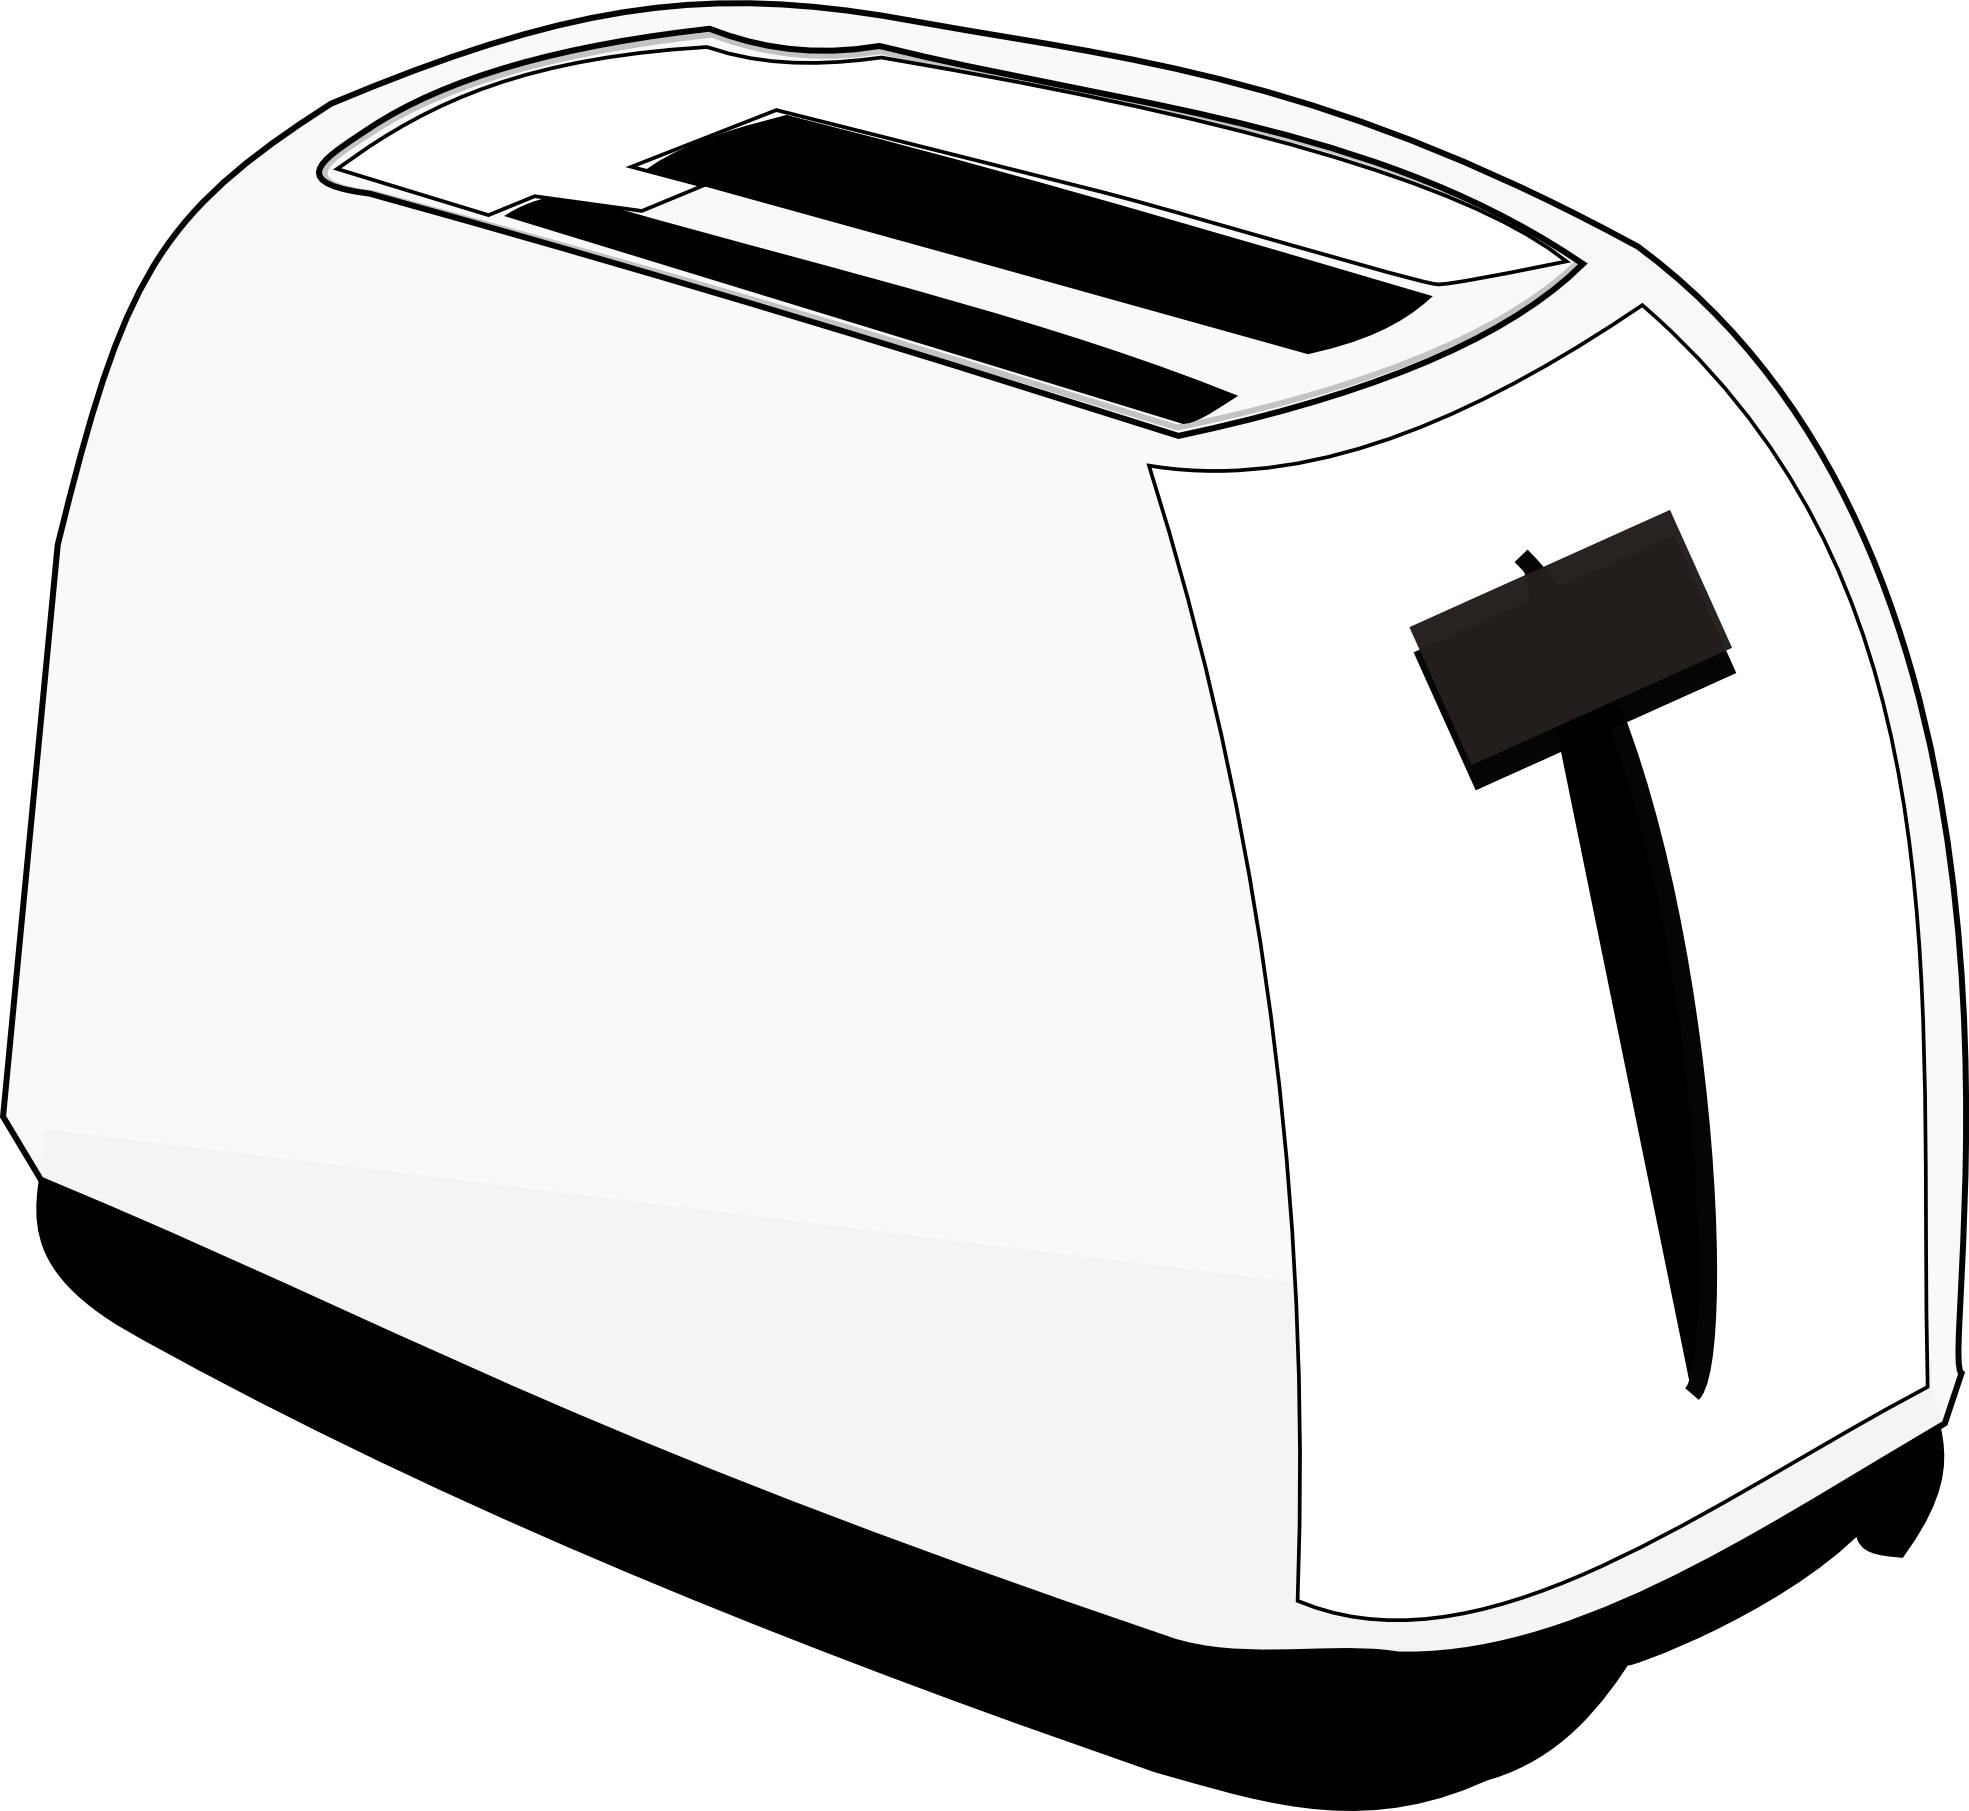 clip art library stock Rice black and white. Clipart toaster.